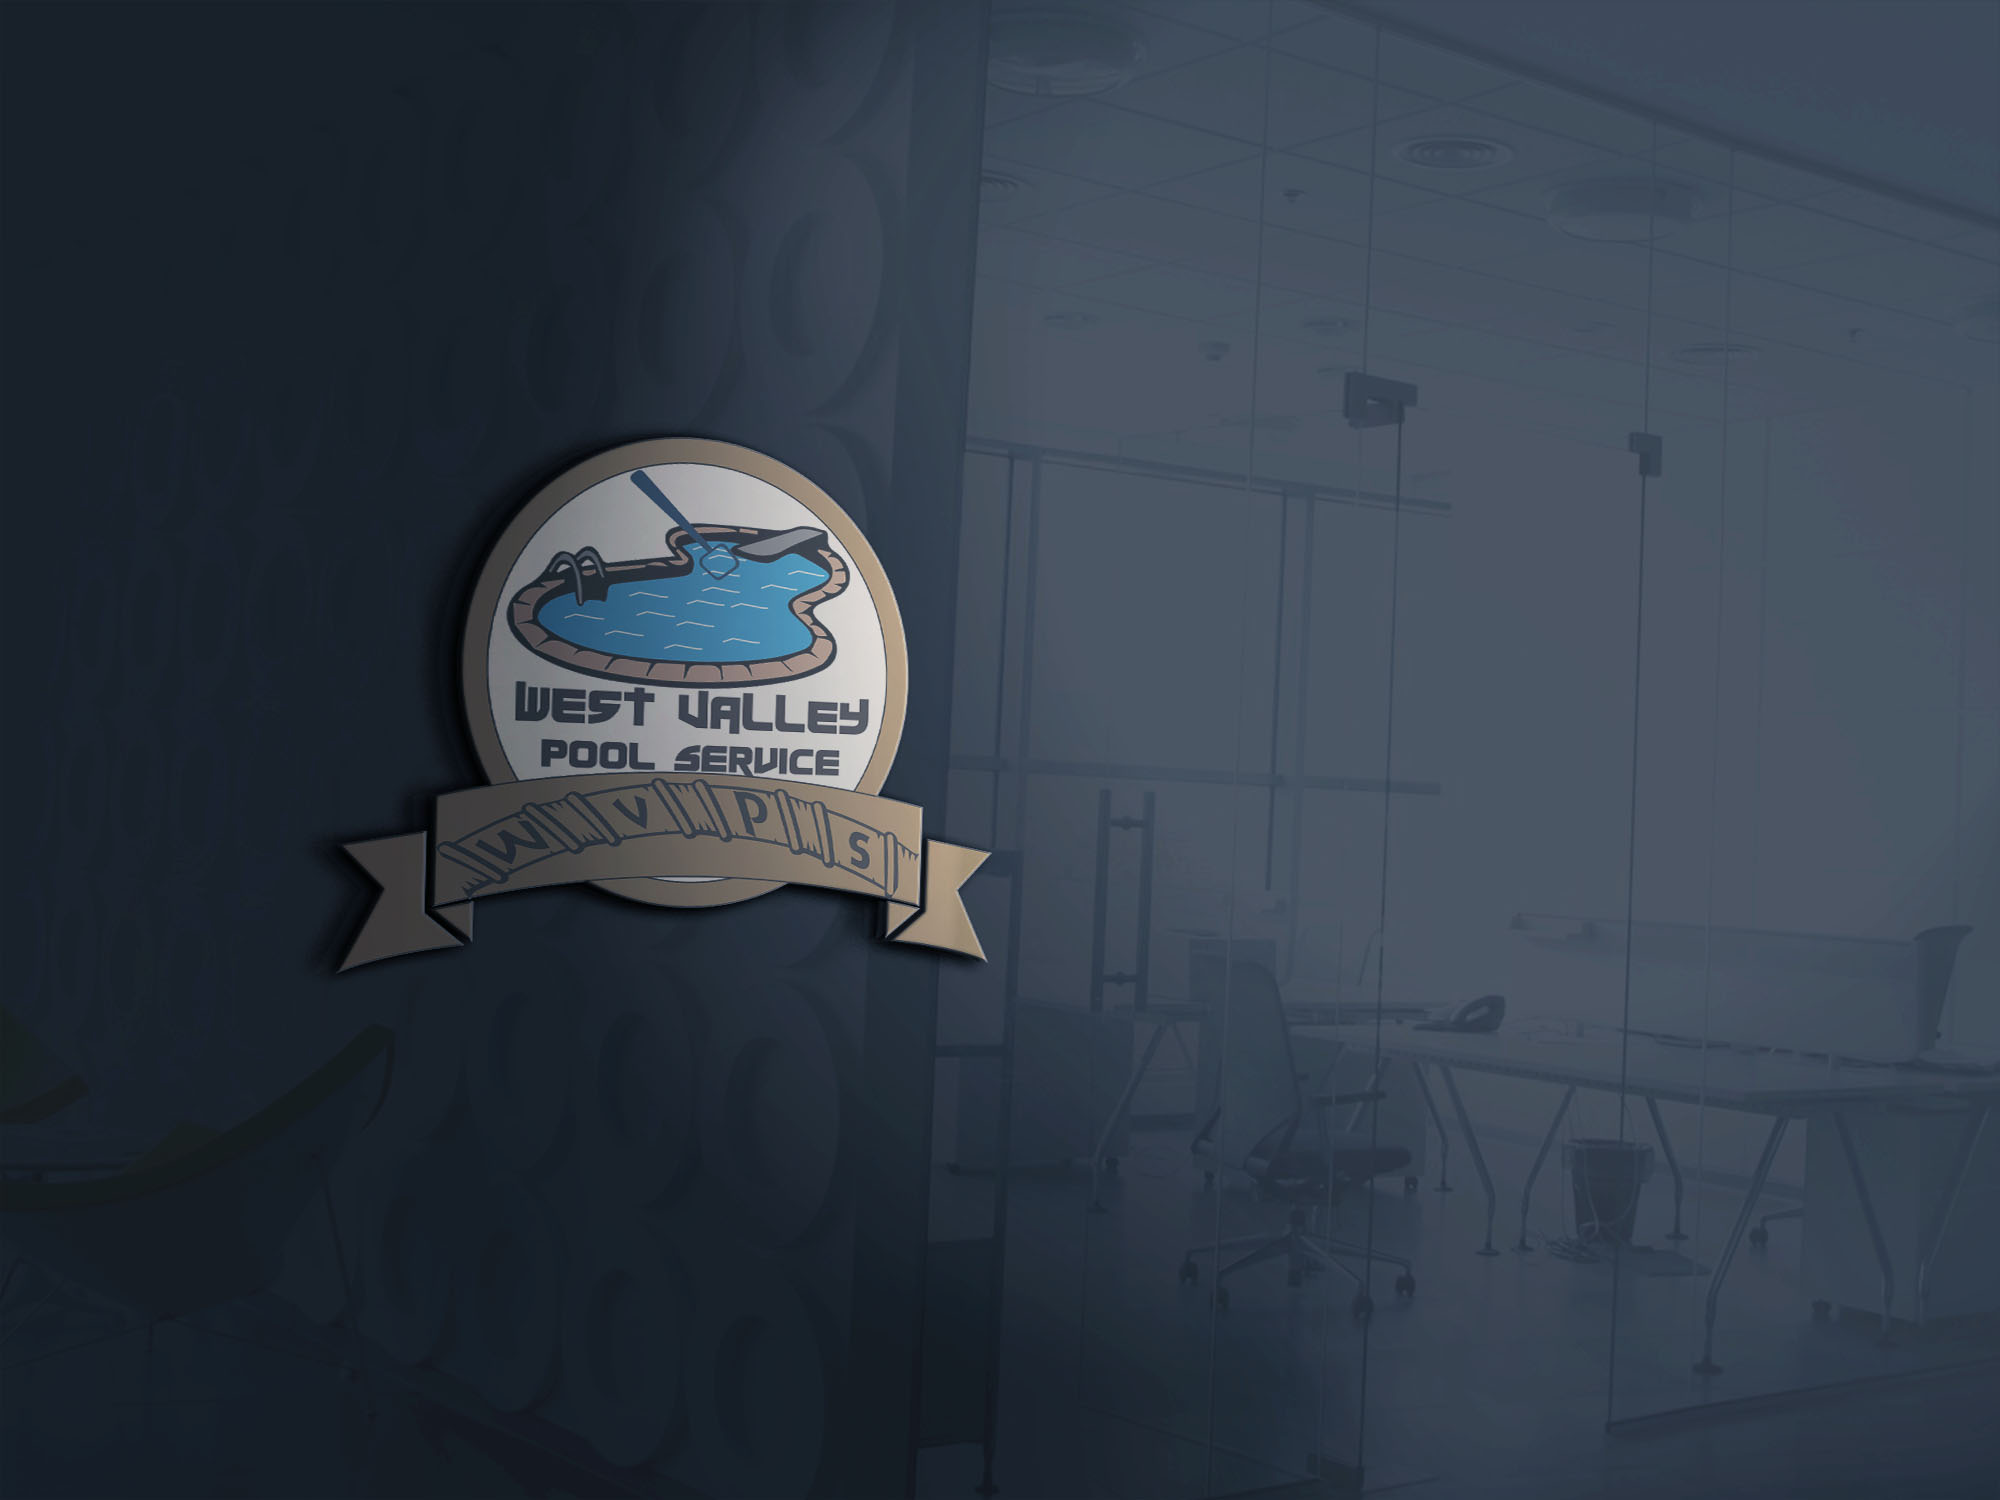 Logo Design by Umair ahmed Iqbal - Entry No. 52 in the Logo Design Contest Clever Logo Design for West Valley Pool Service.